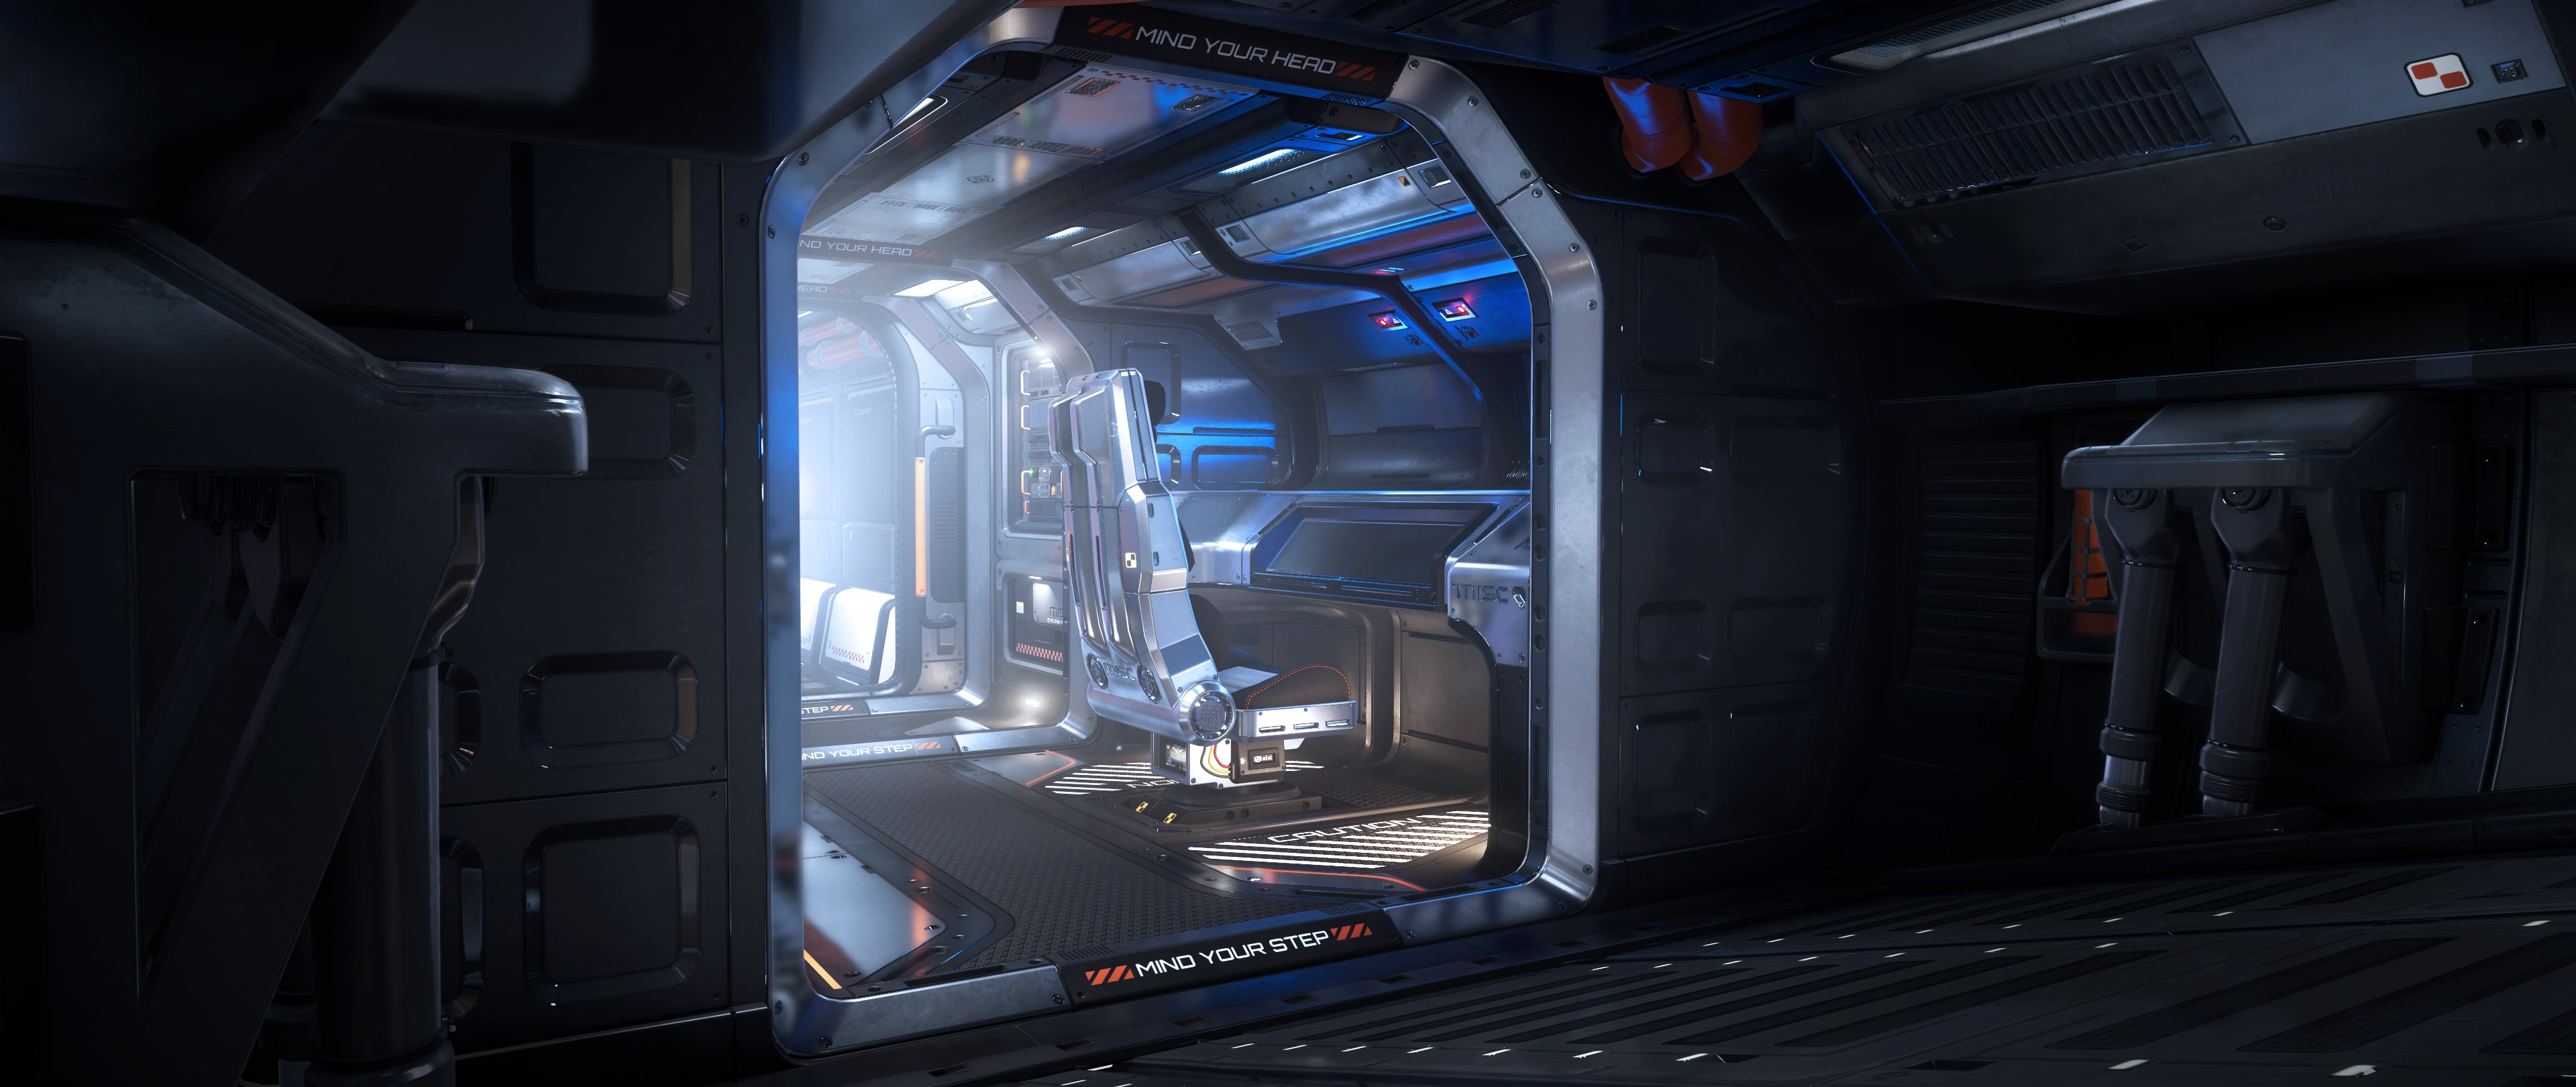 Alpha 3 5 new features and ships - Roberts Space Industries